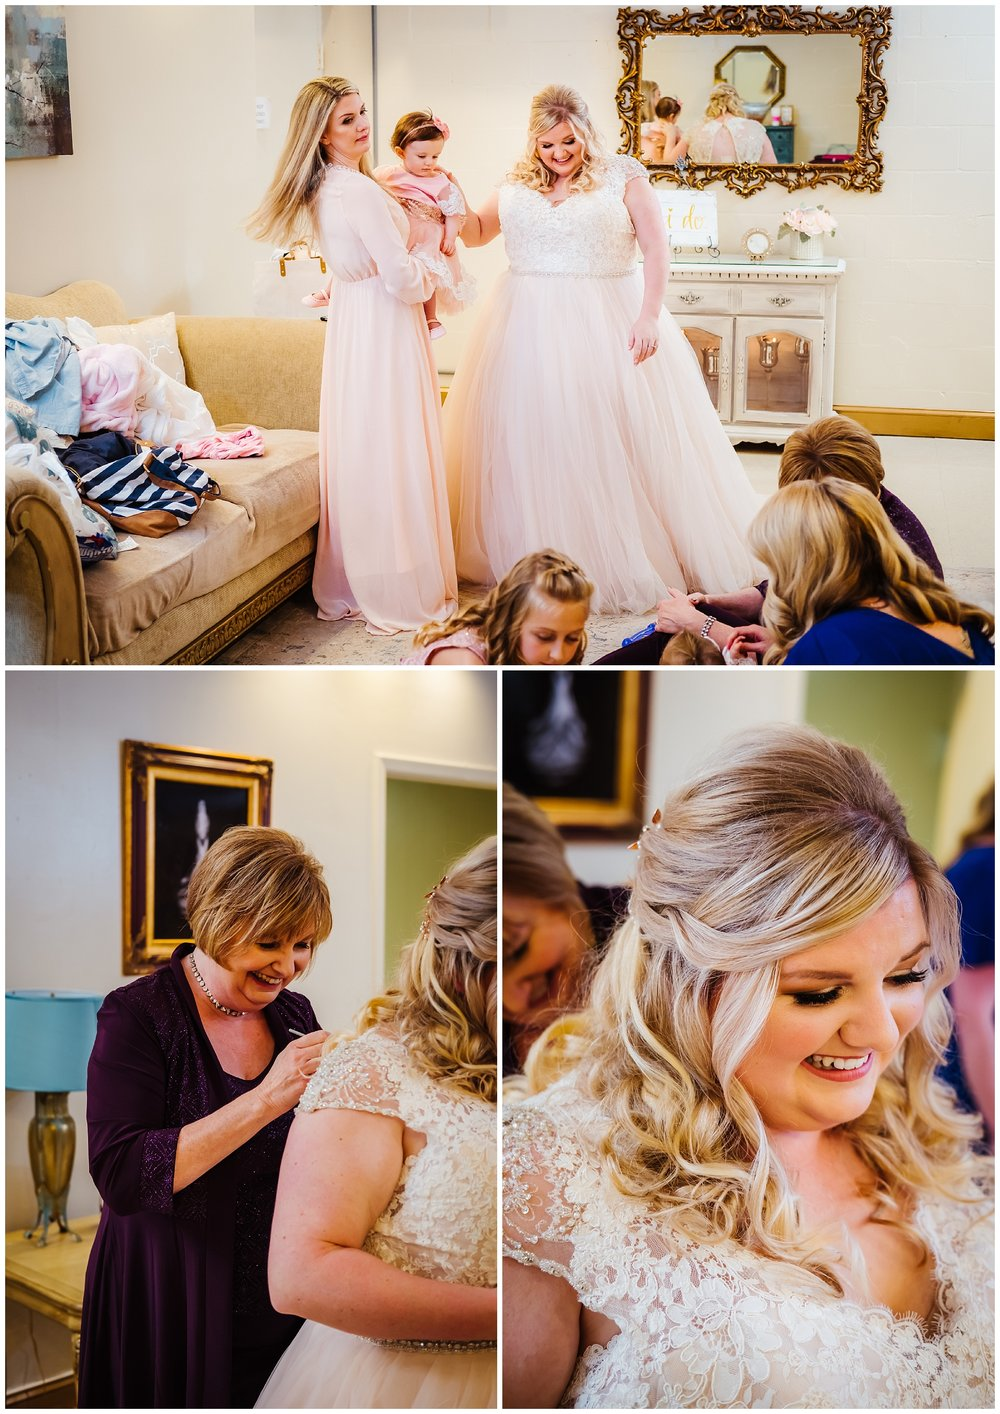 tampa-wedding-photographer-kapok-special-events-center-hayley-paige-gress-blush-gold-disney_0014.jpg